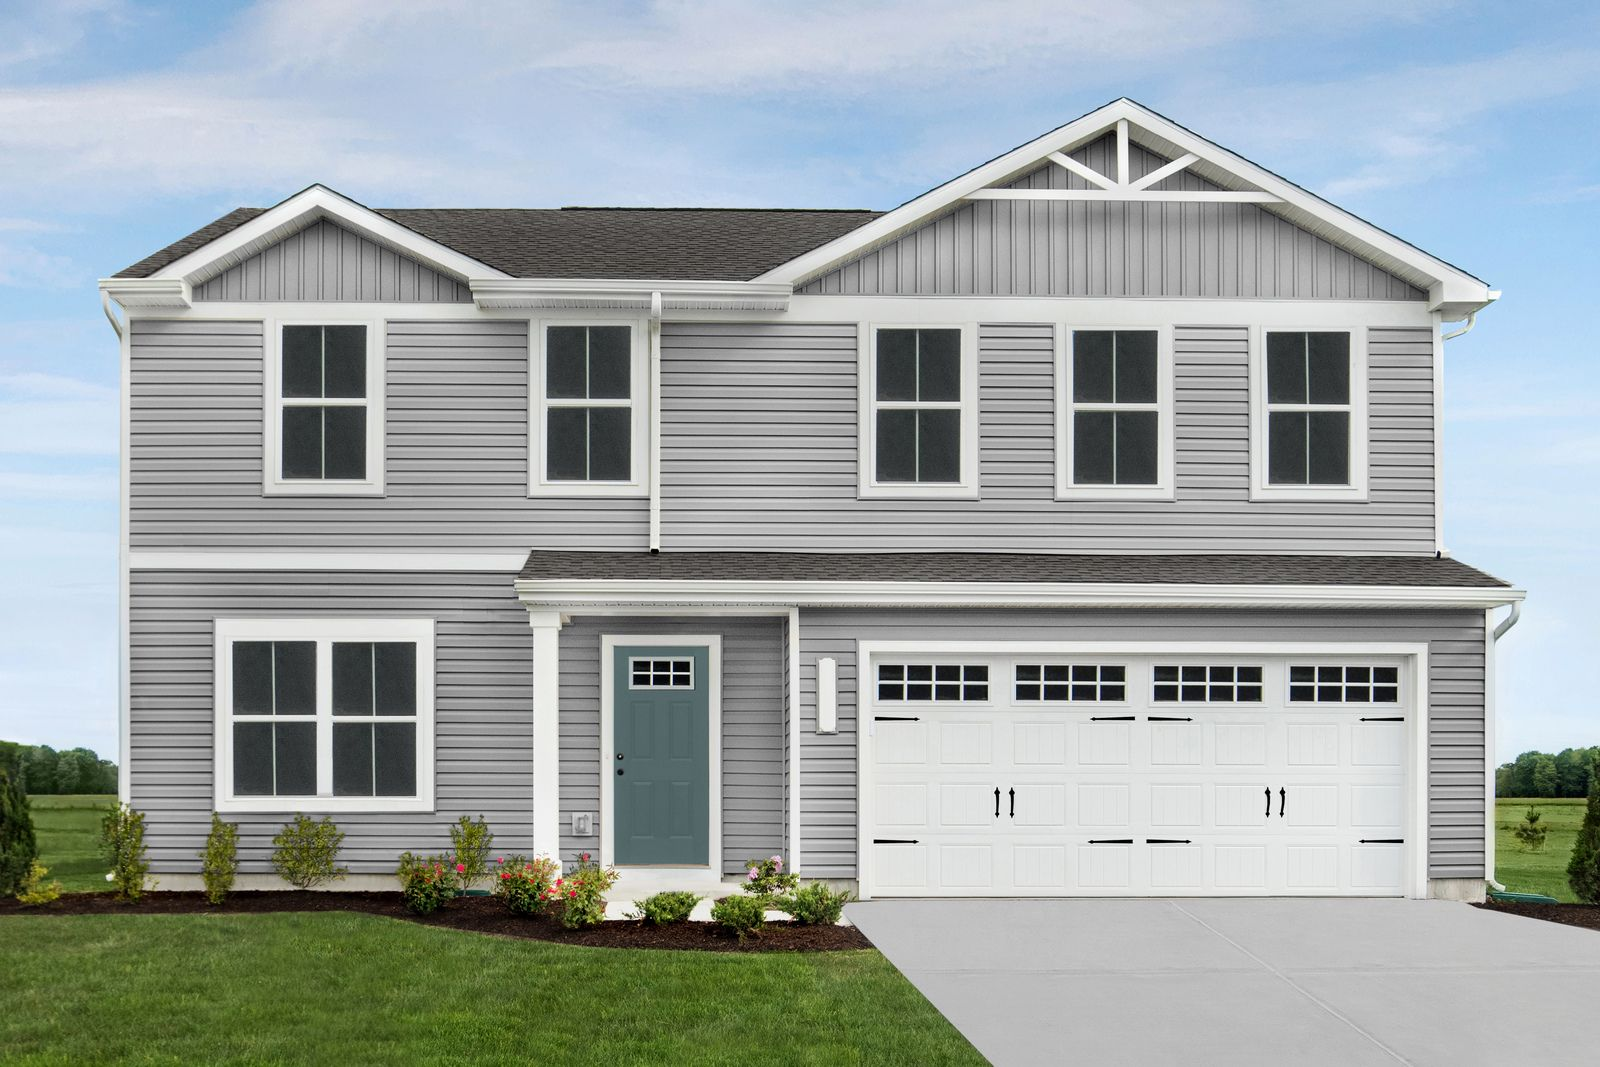 Own a new home in the highly desired Wren school district.:Located within 5 minutes of I-85 interstate access. Schedule a visit to learn more!